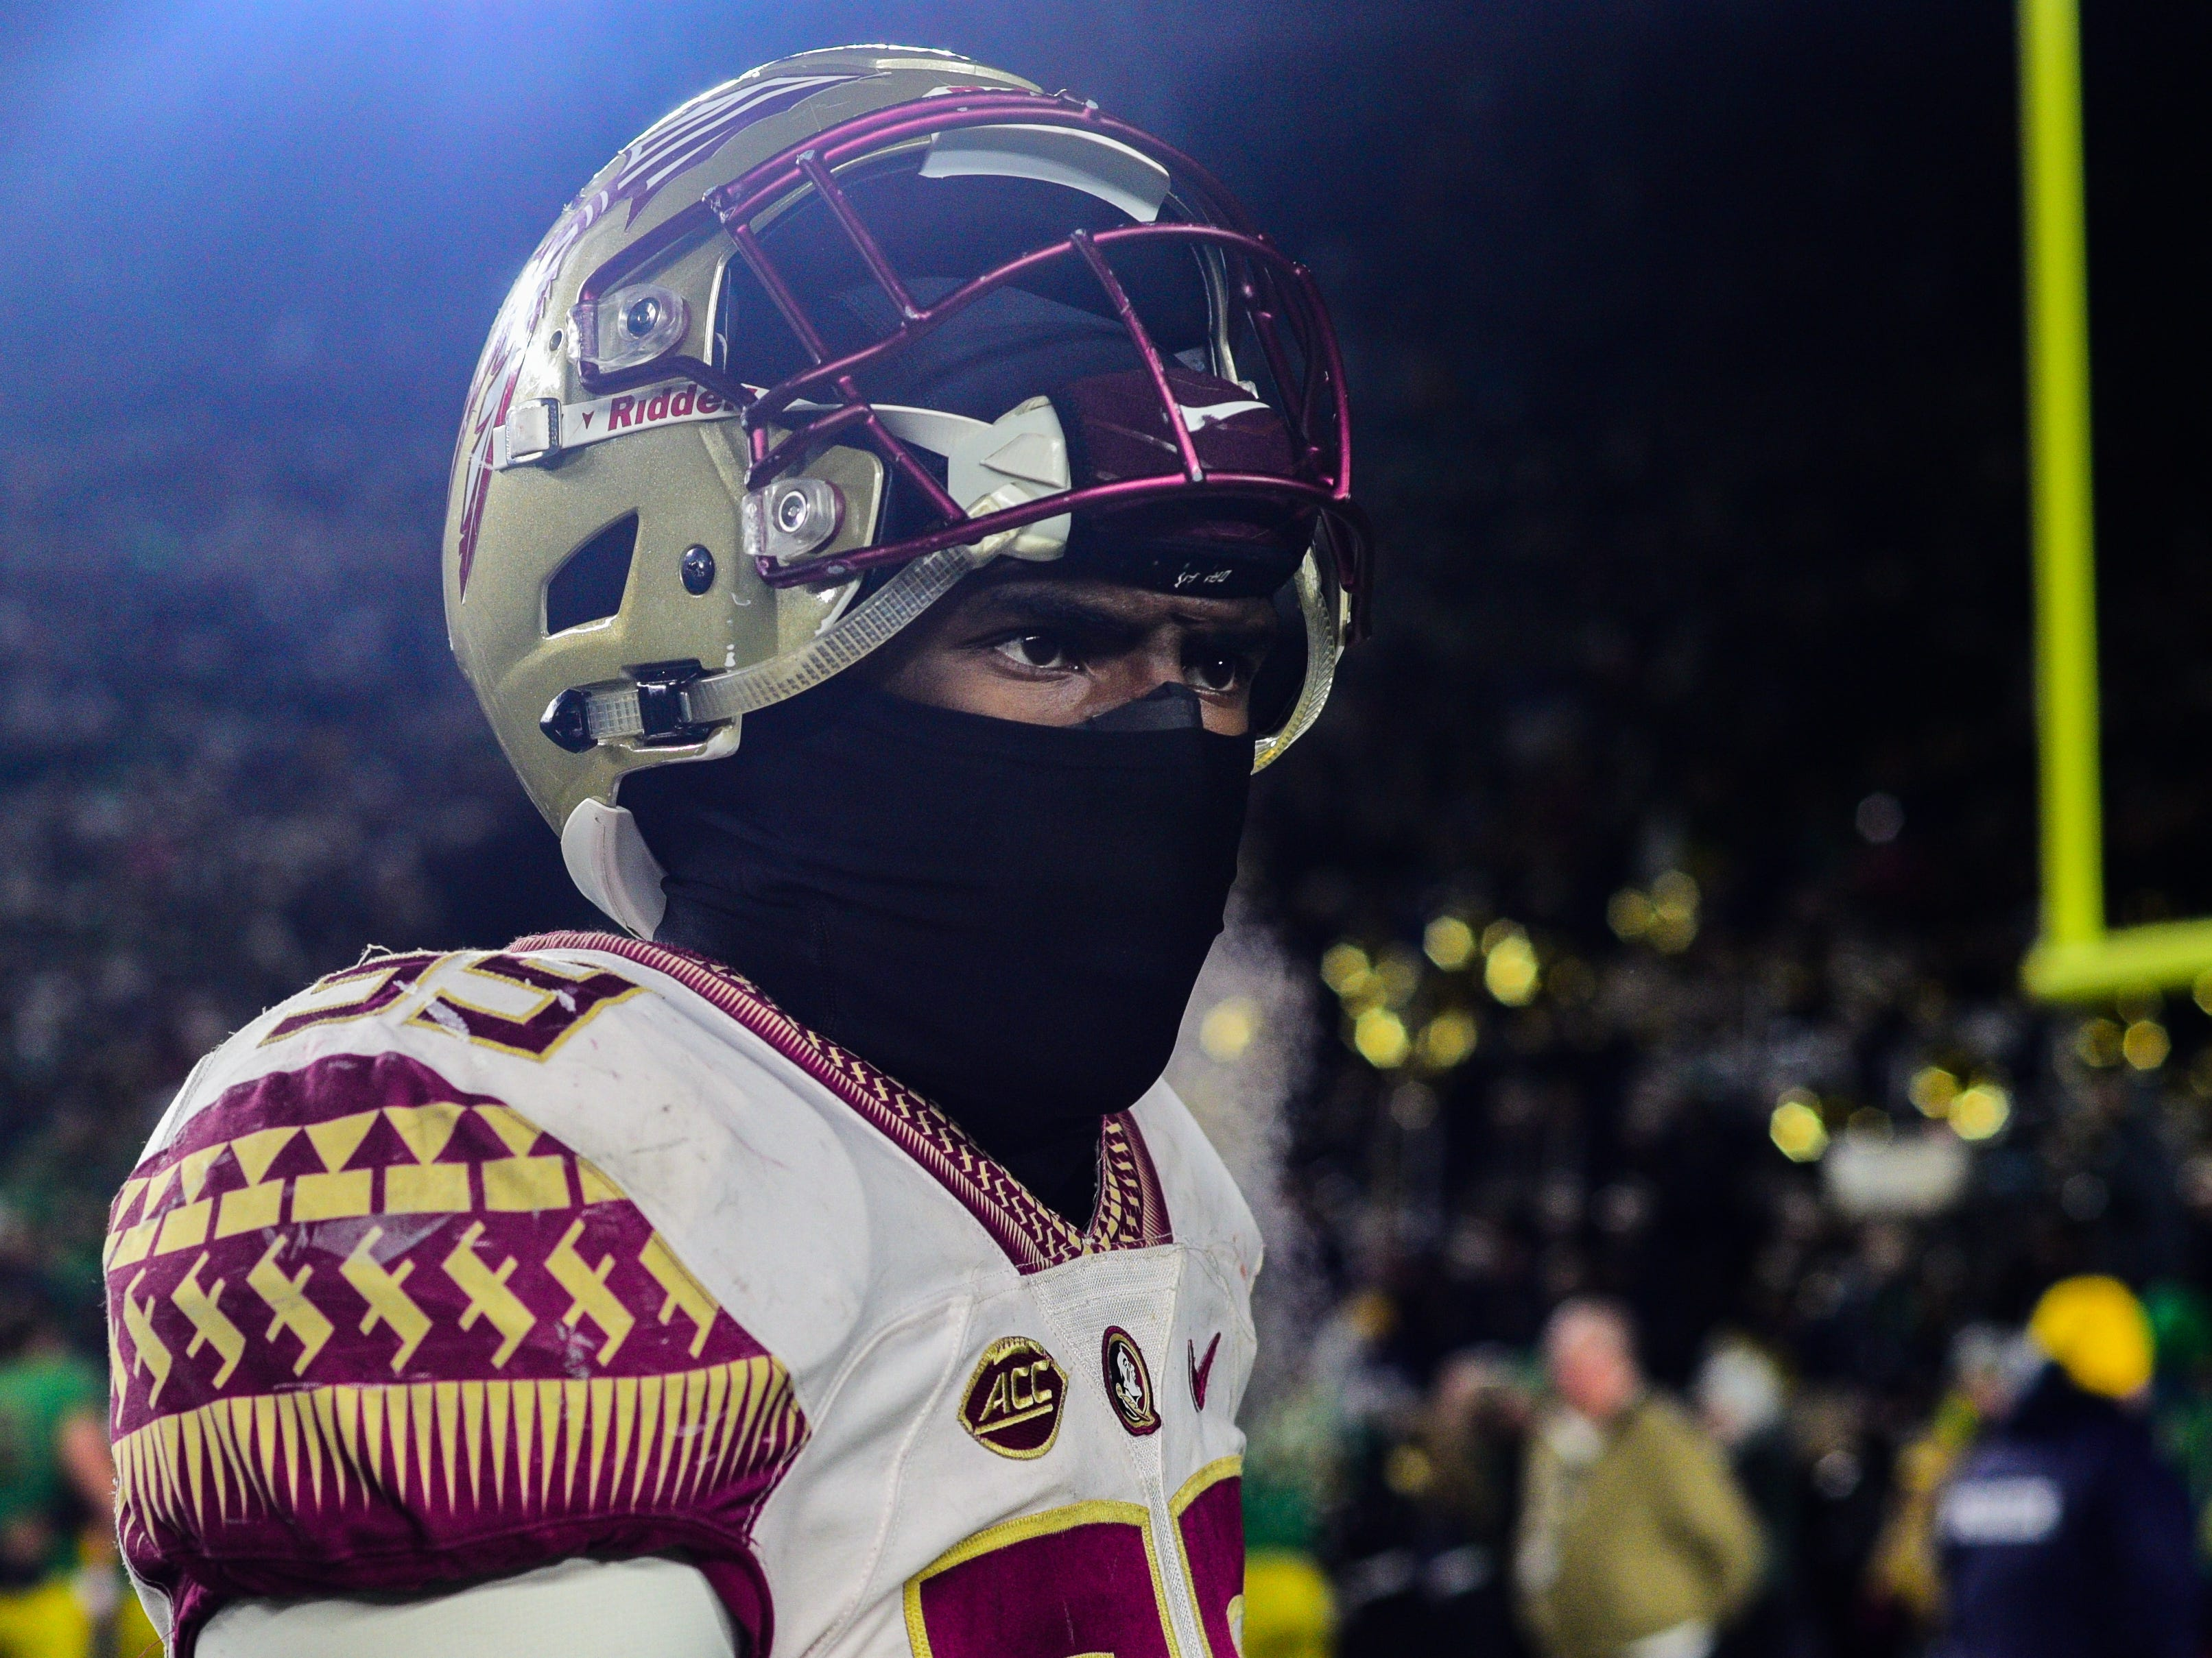 Florida State junior defensive end Brian Burns walks off the field in anger after the Seminoles were blown out 42-13 by Notre Dame in South Bend on Saturday.